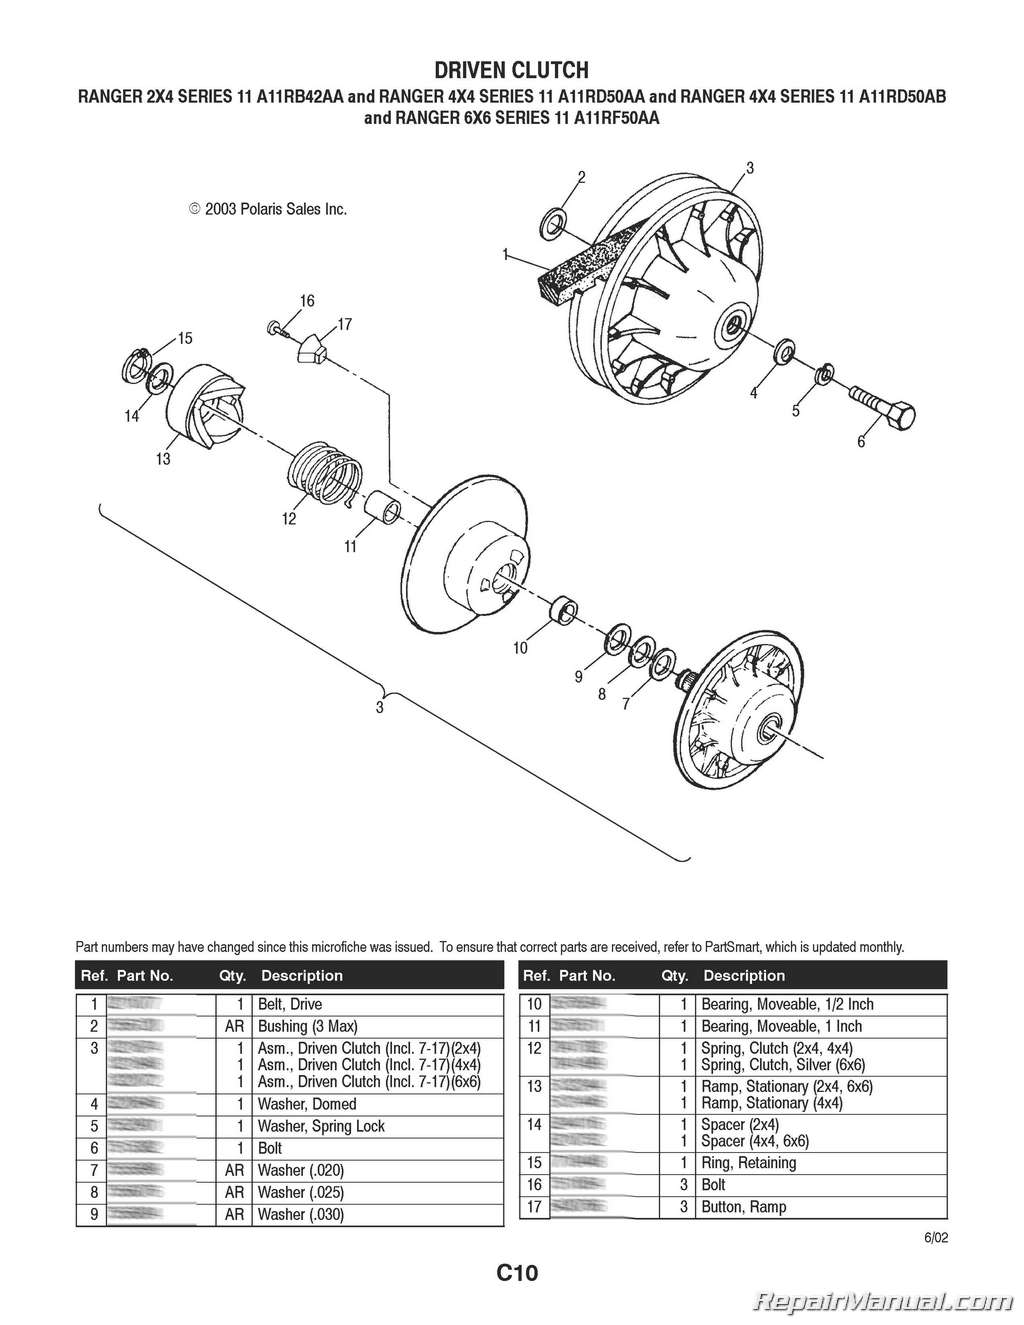 Polaris Ranger 2 4 4 4 6 6 Series 11 Parts Manual